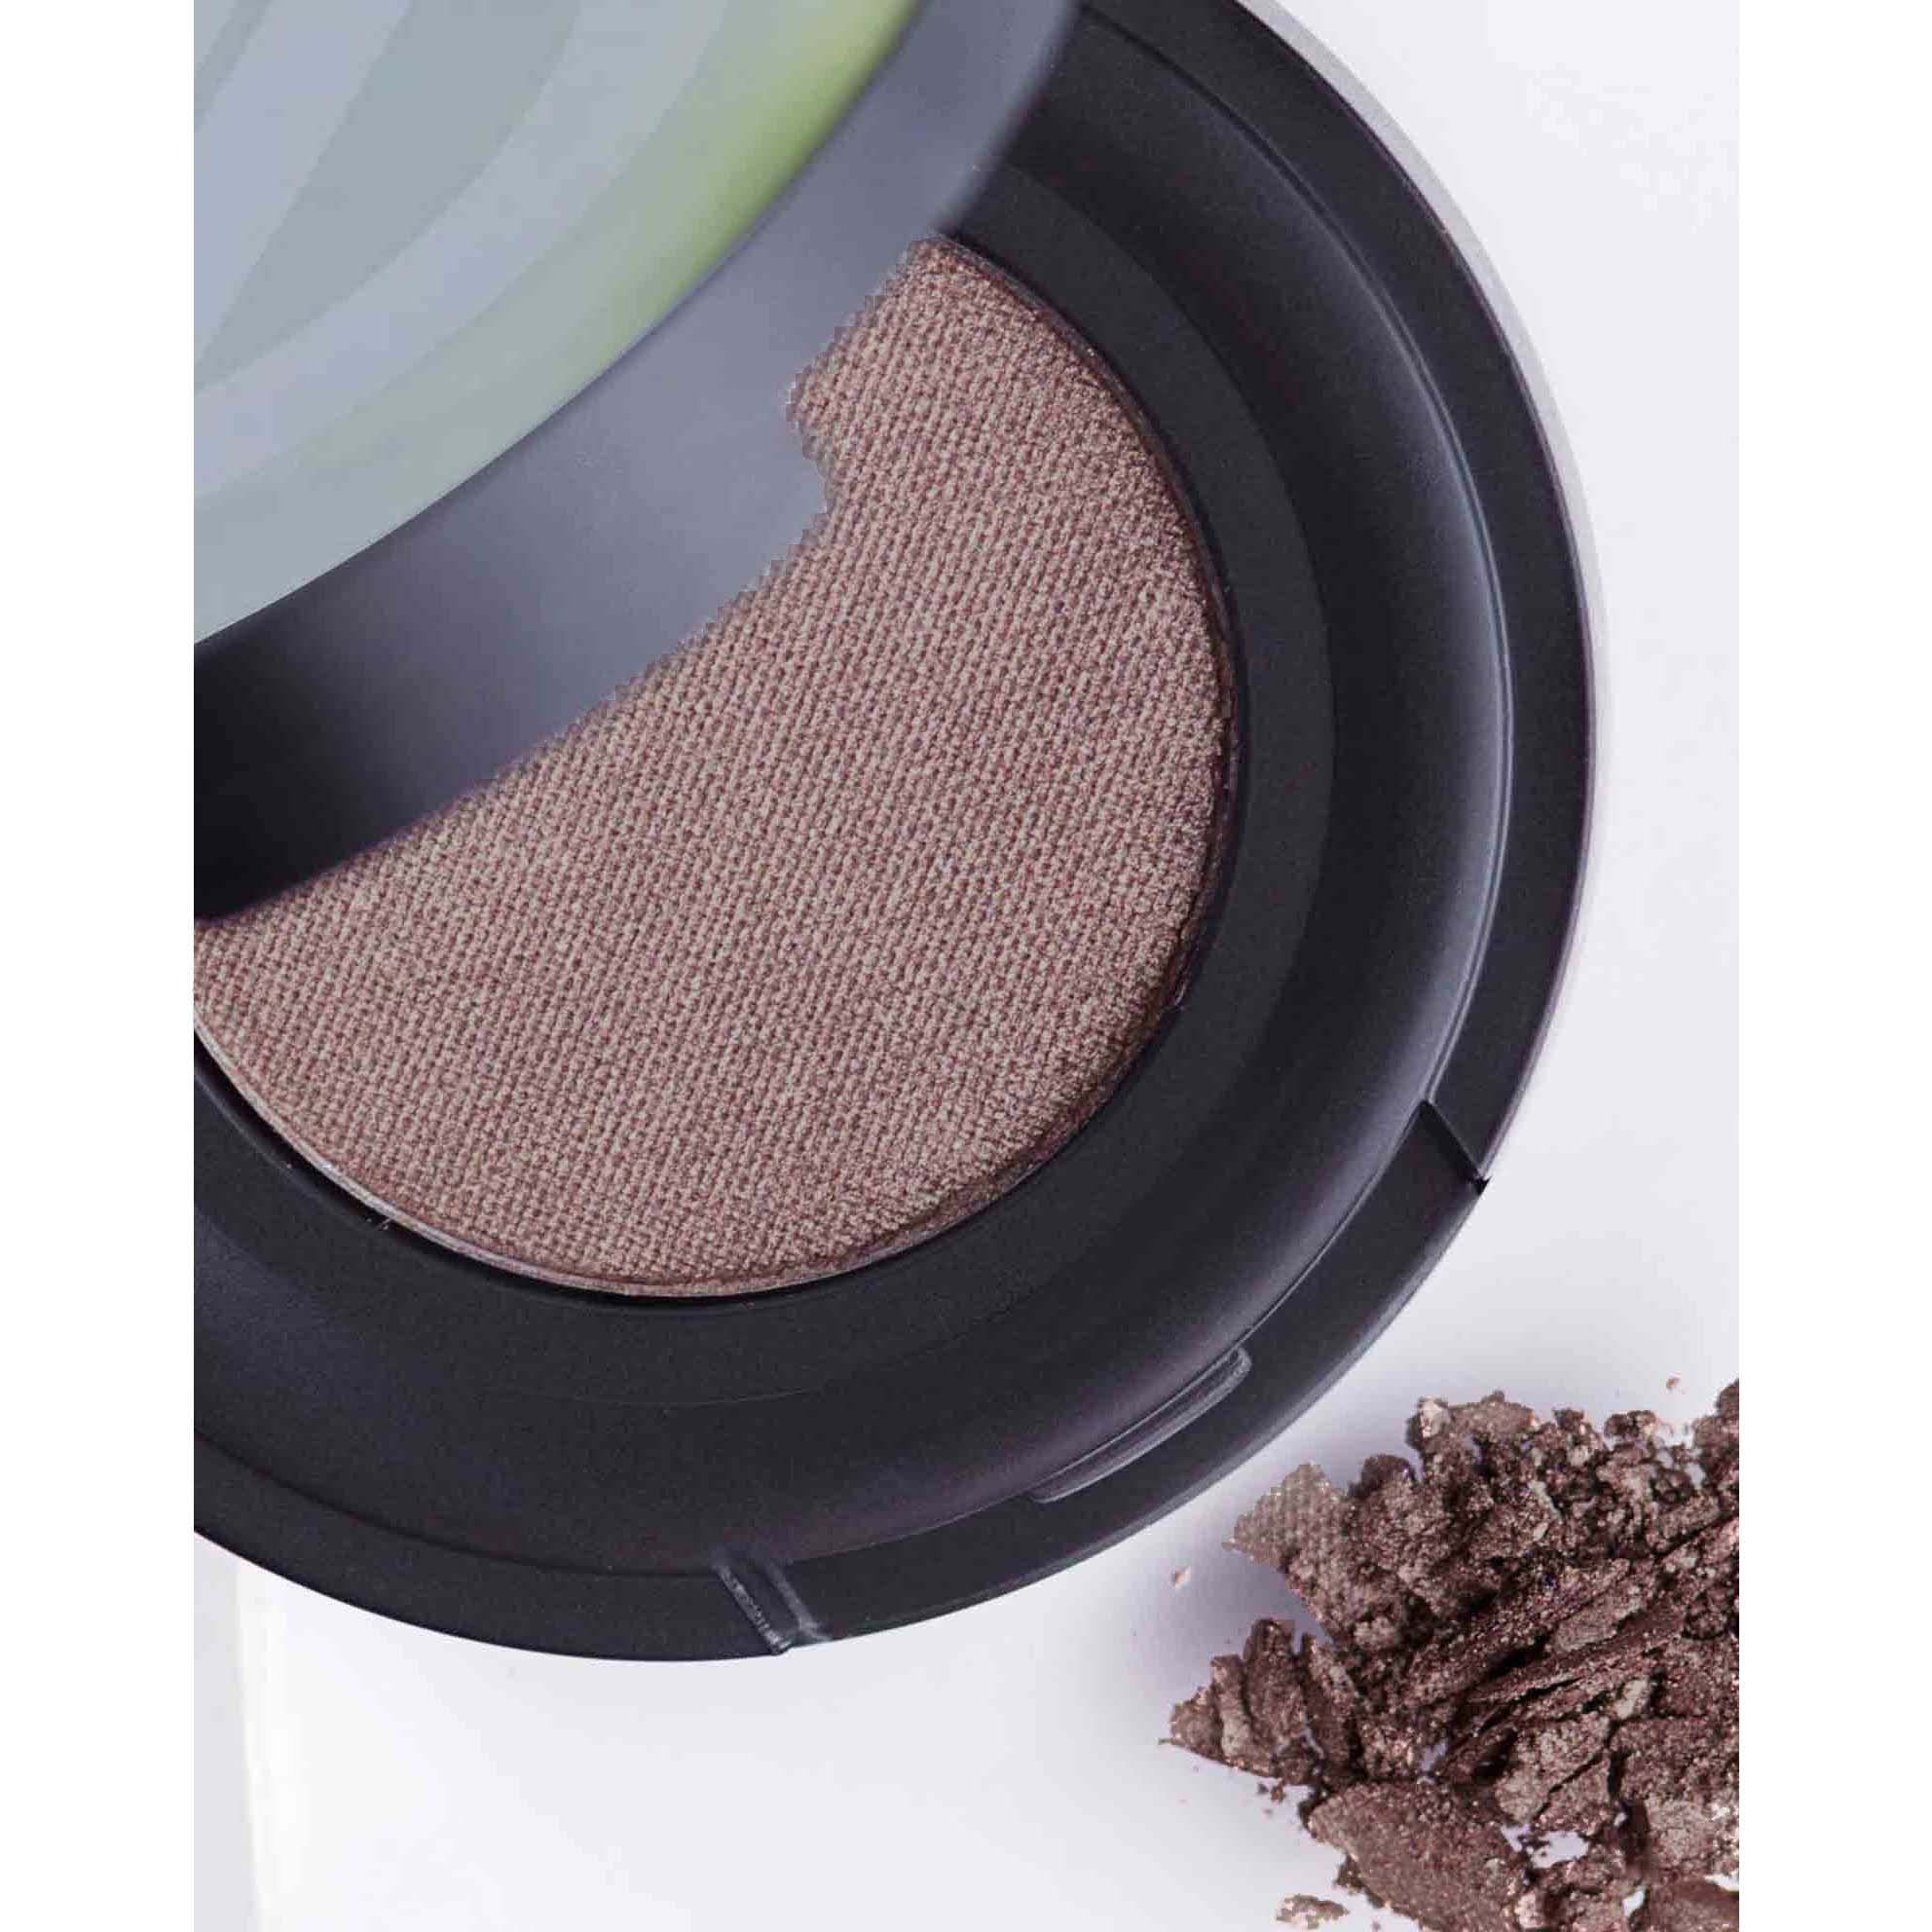 Omiana Pressed Mineral Powder Mocha